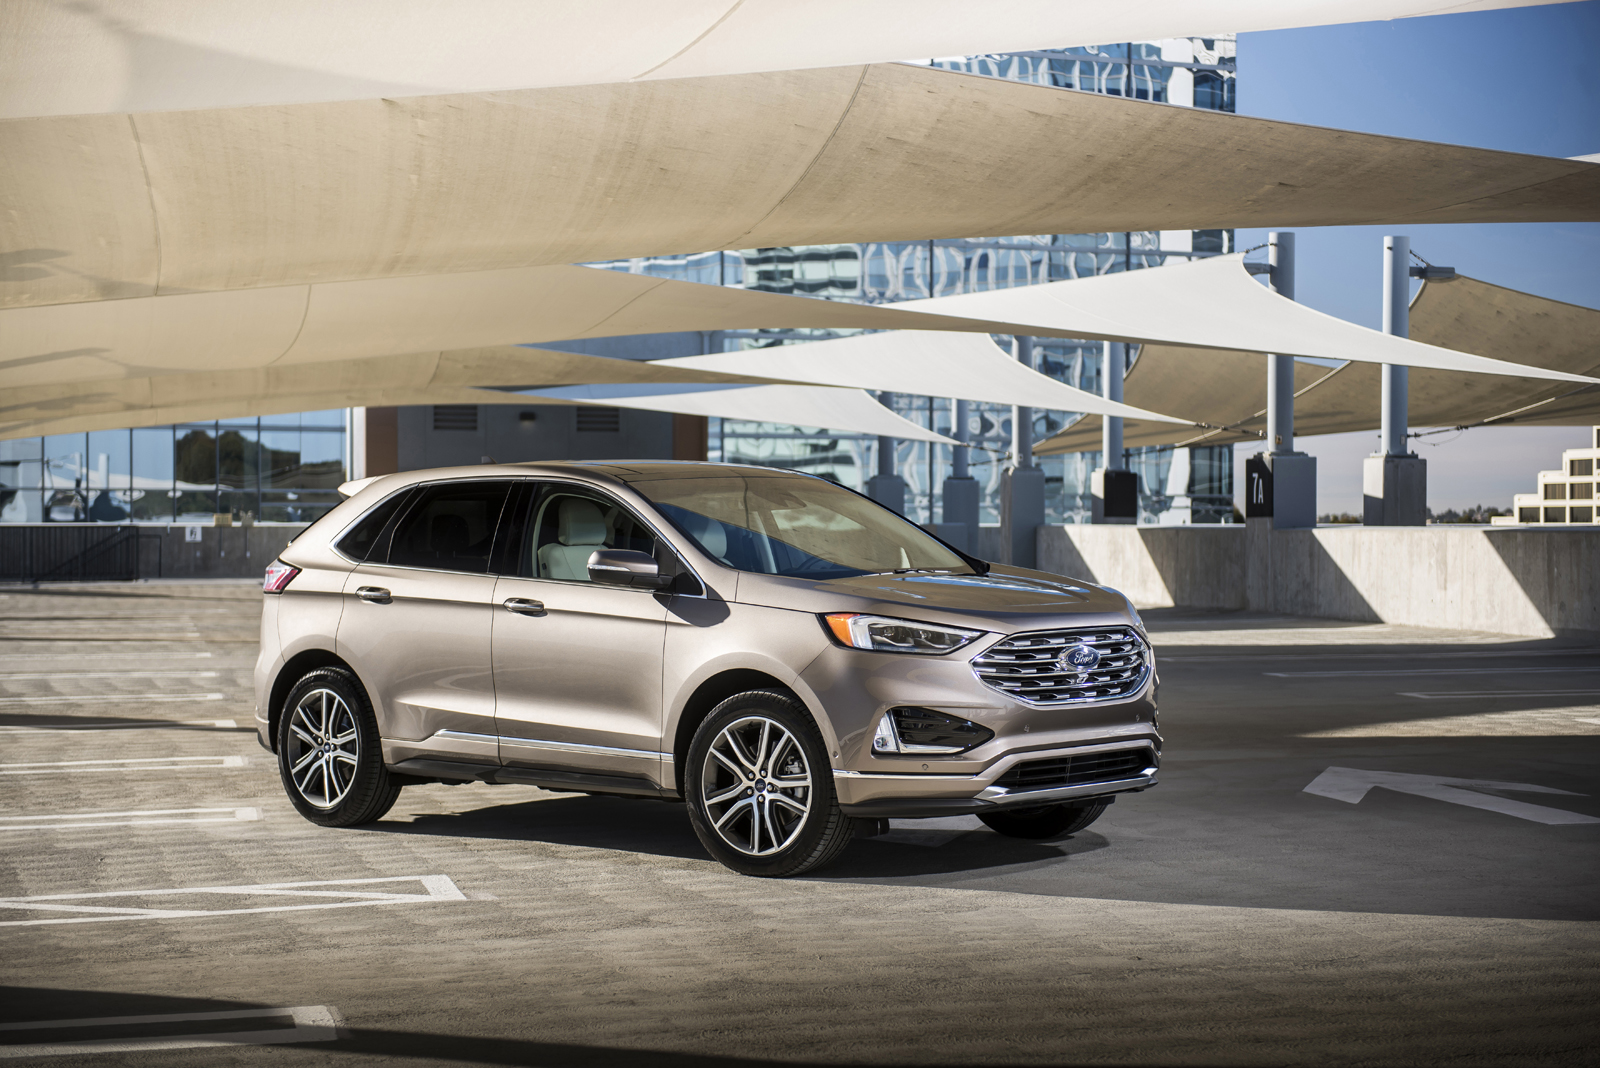 Ford's SUV Offerings Expand Even More With 2019 Edge ...